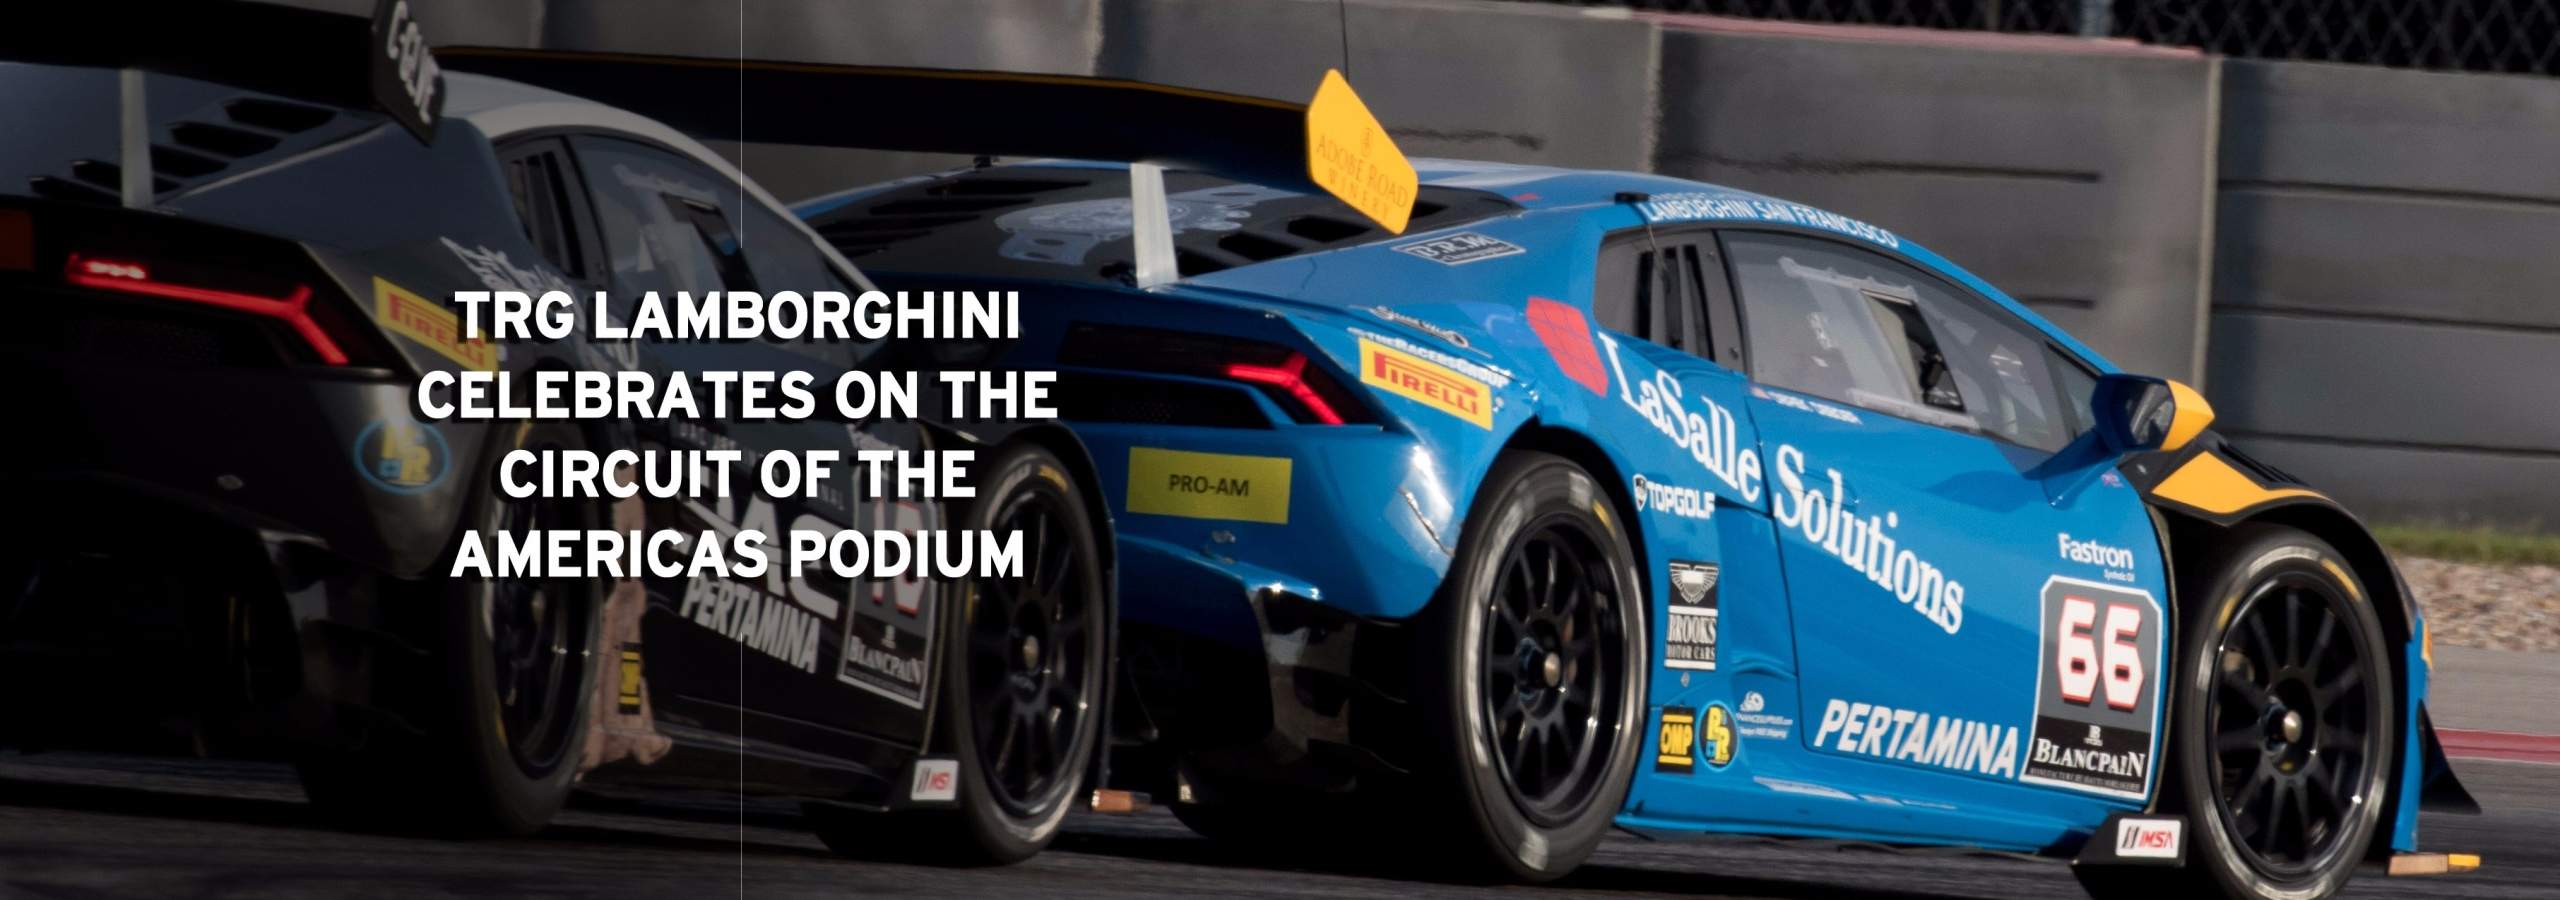 TRG Lamborghini Celebrates On The Circuit of The Americas Podium